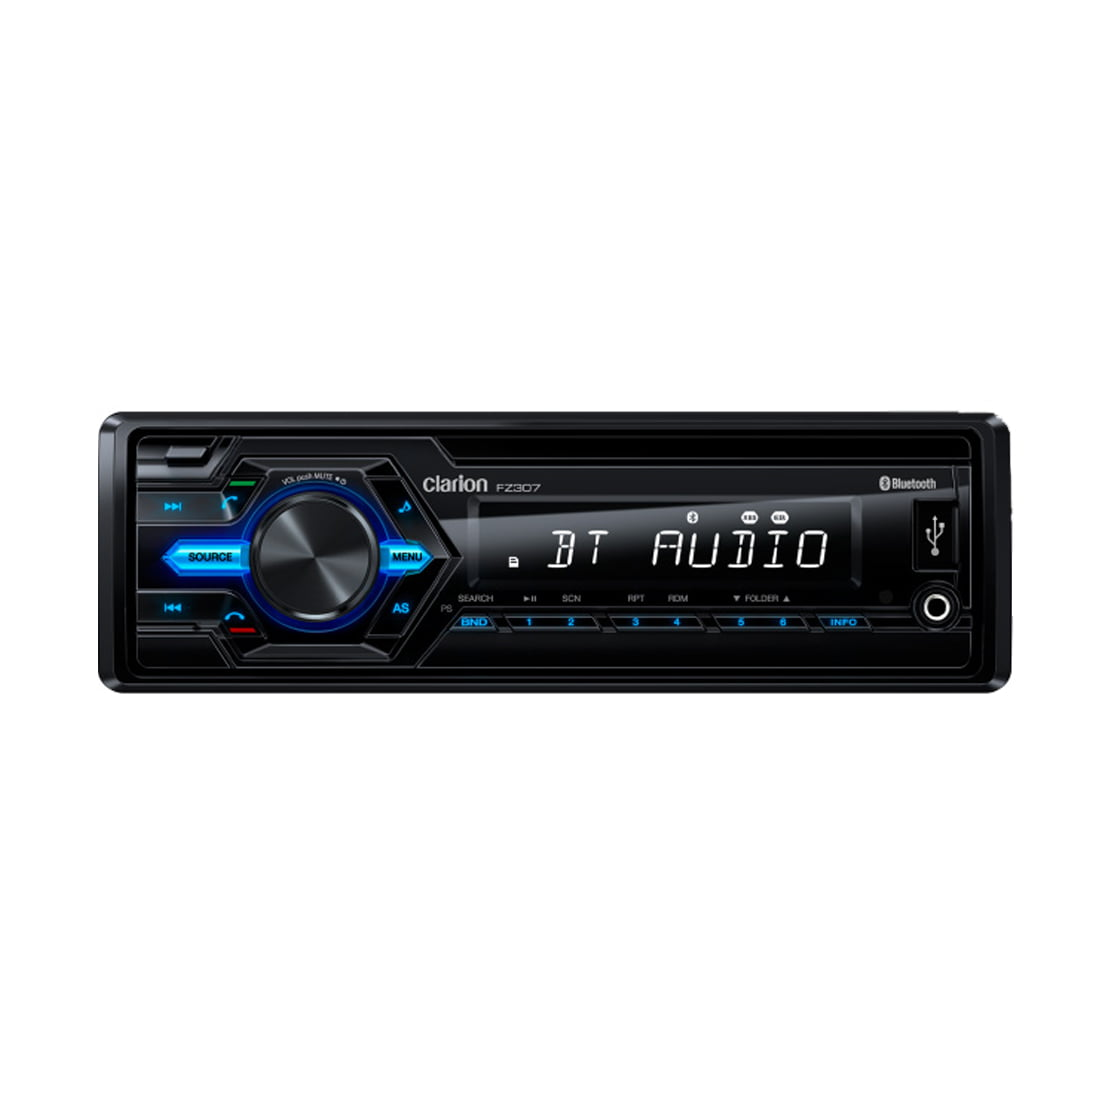 Sony car stereo bluetooth iphone 13